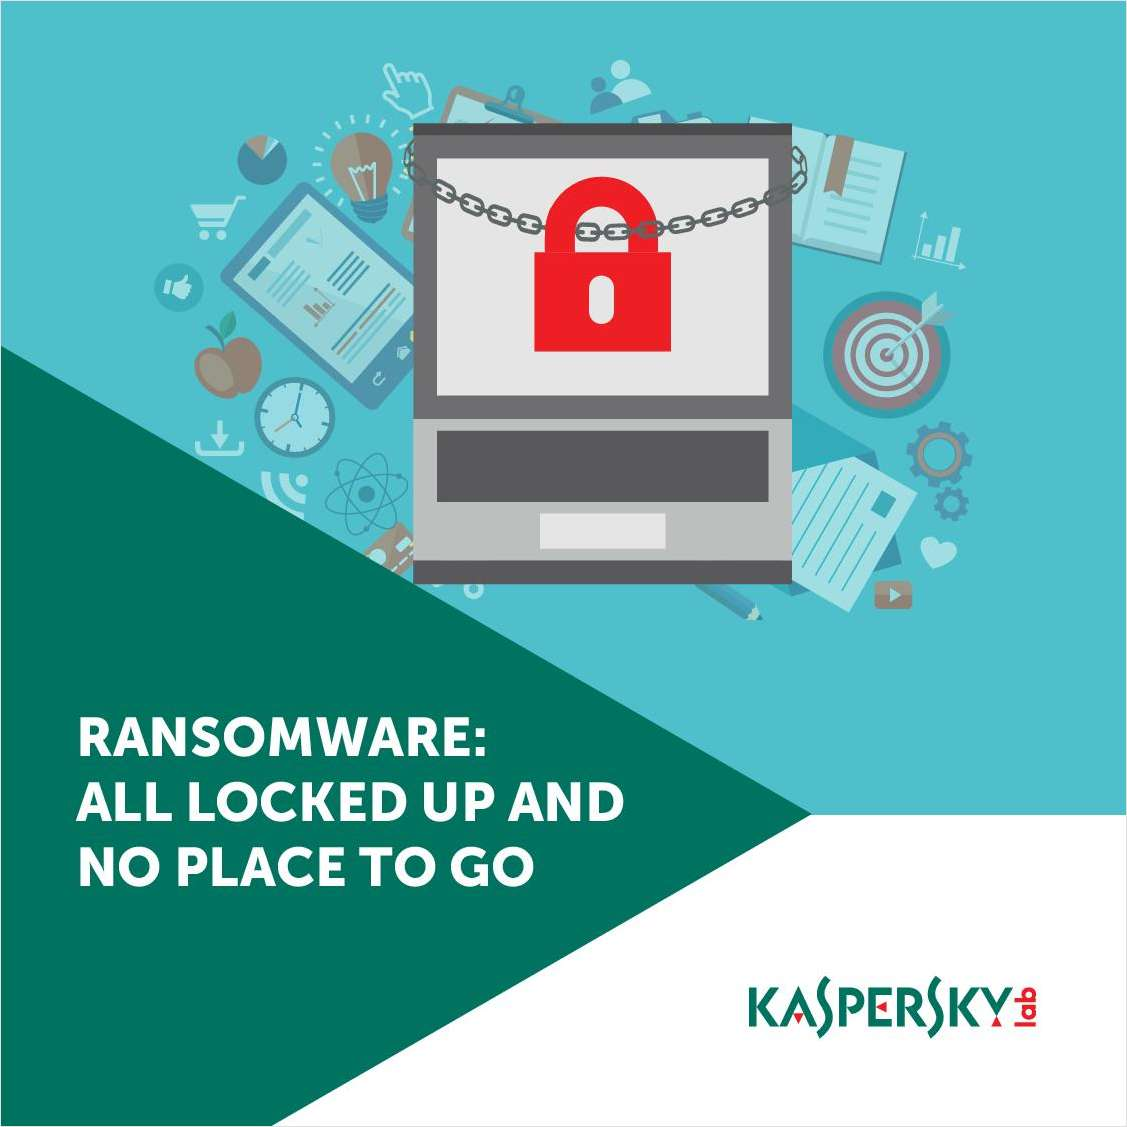 Ransomware: All Locked Up and No Place To Go